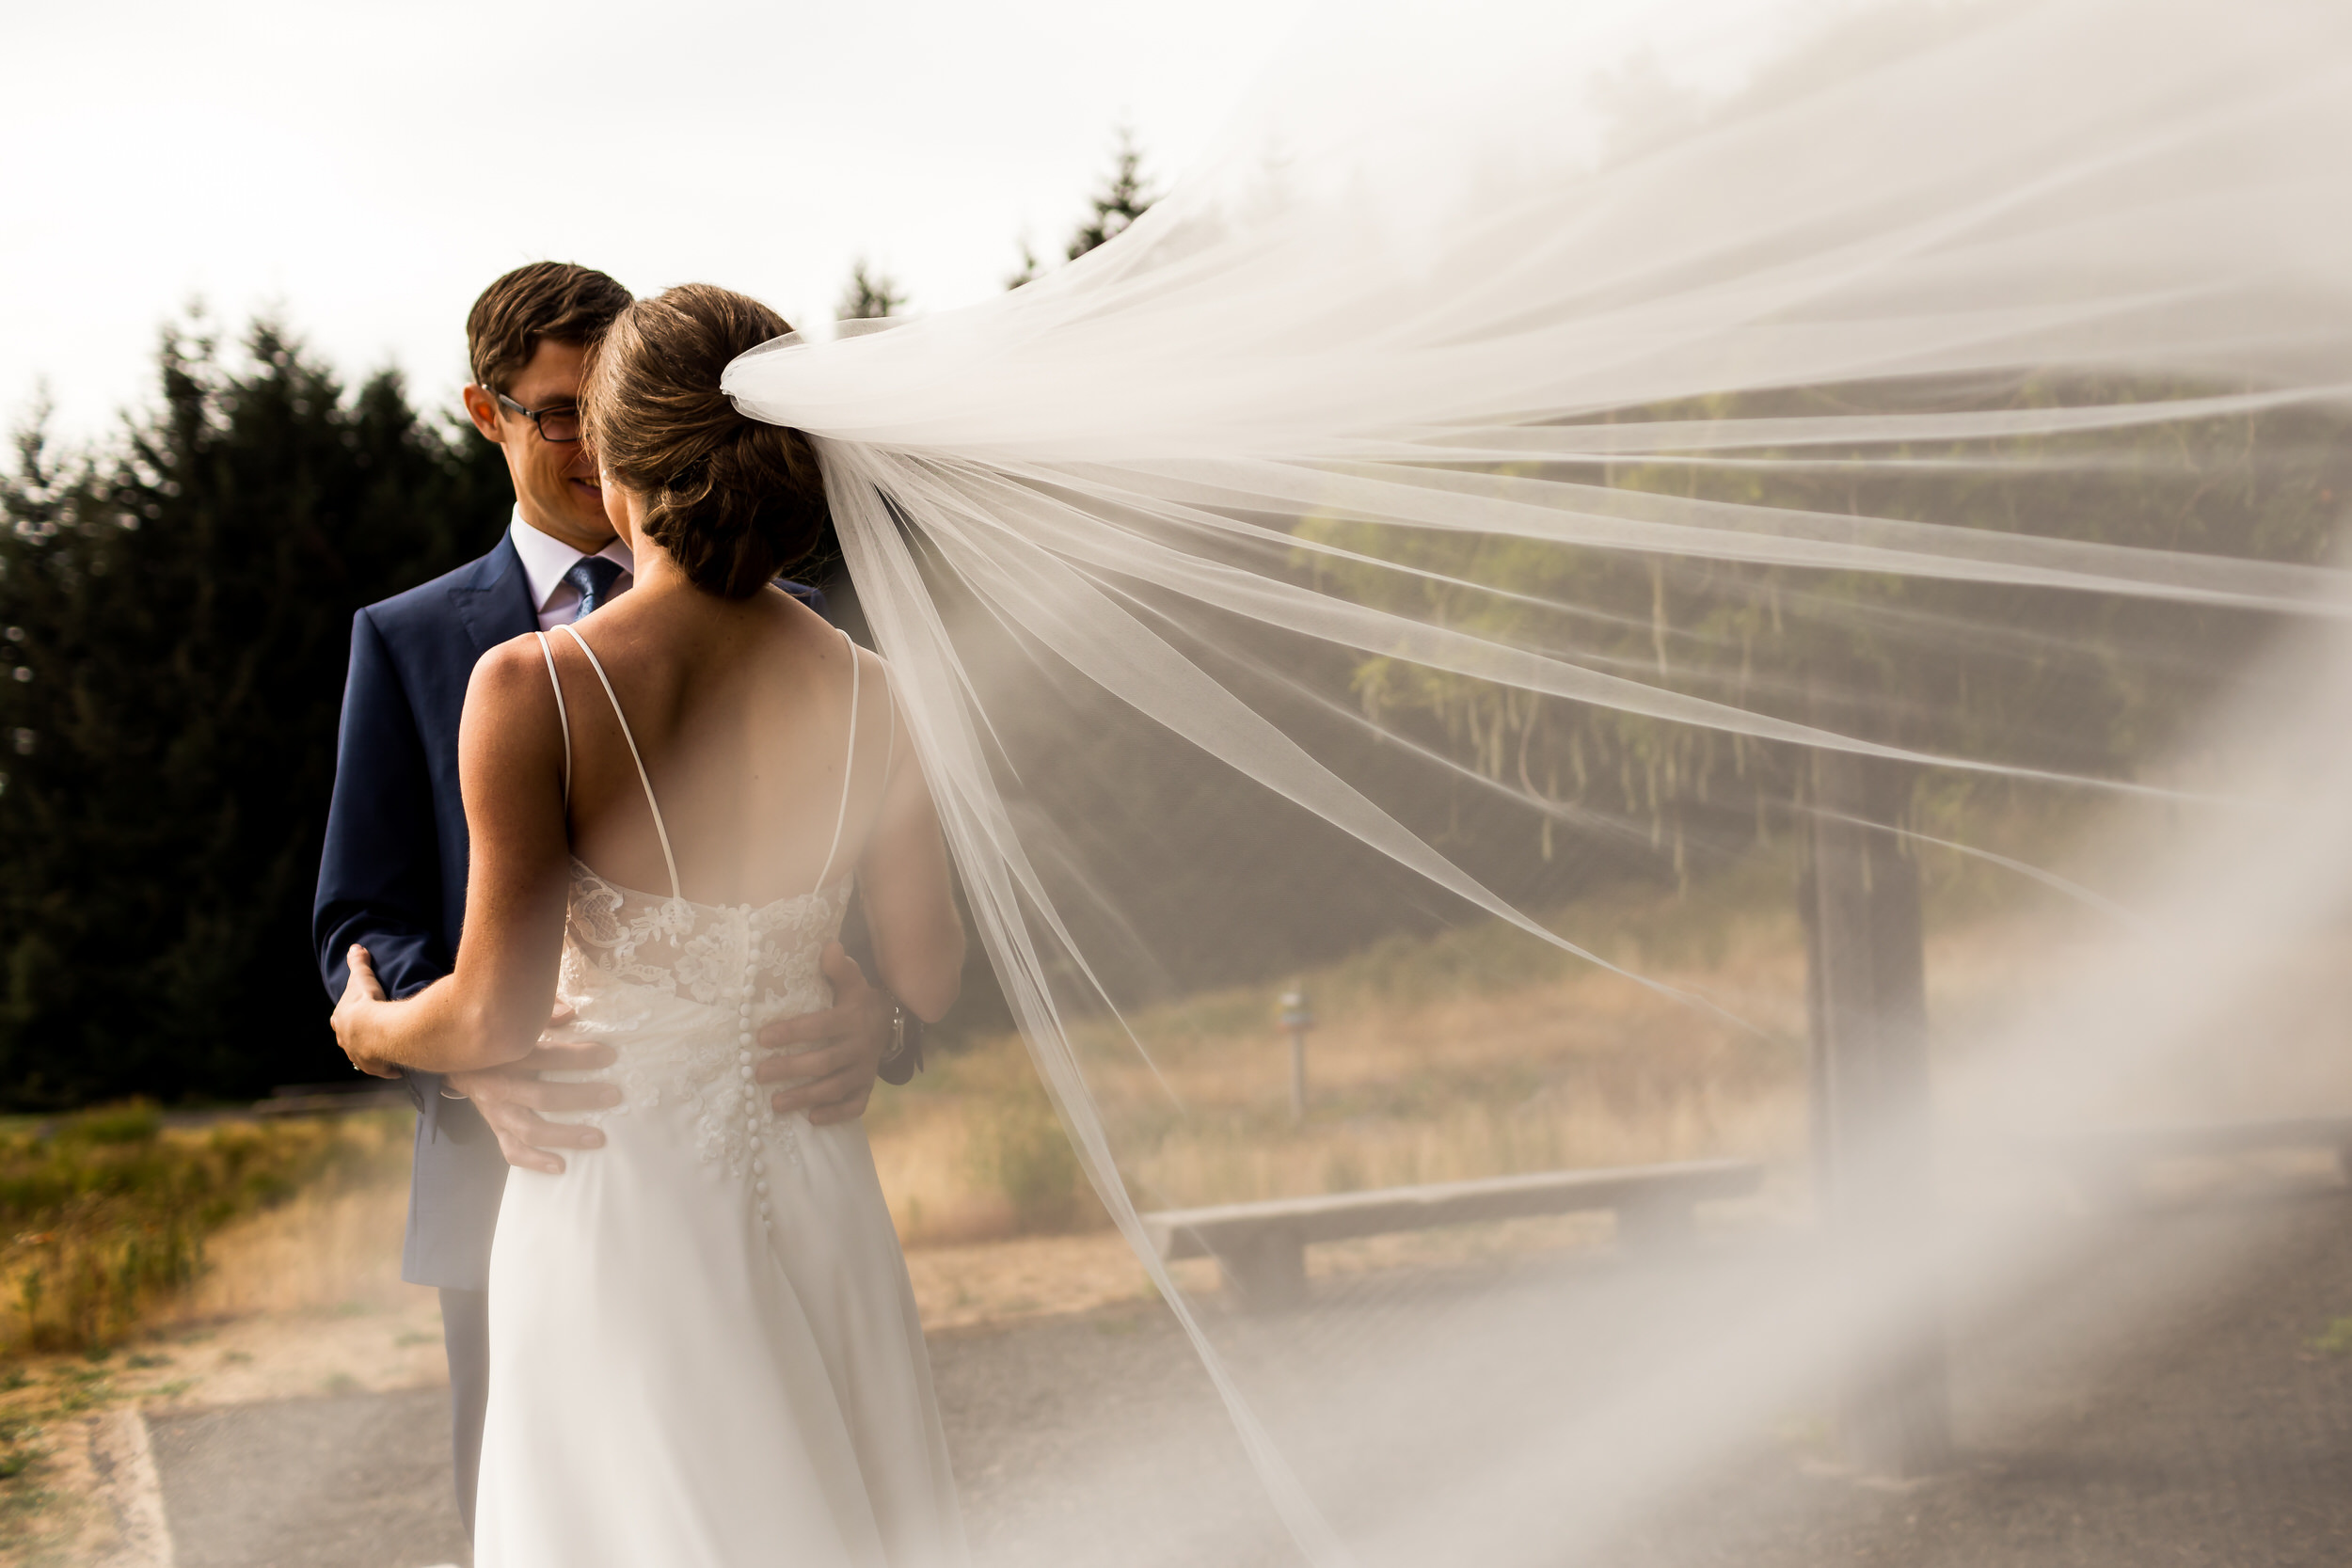 Gorge_Crest_Vineyards_Wedding_Stark_Photography_024